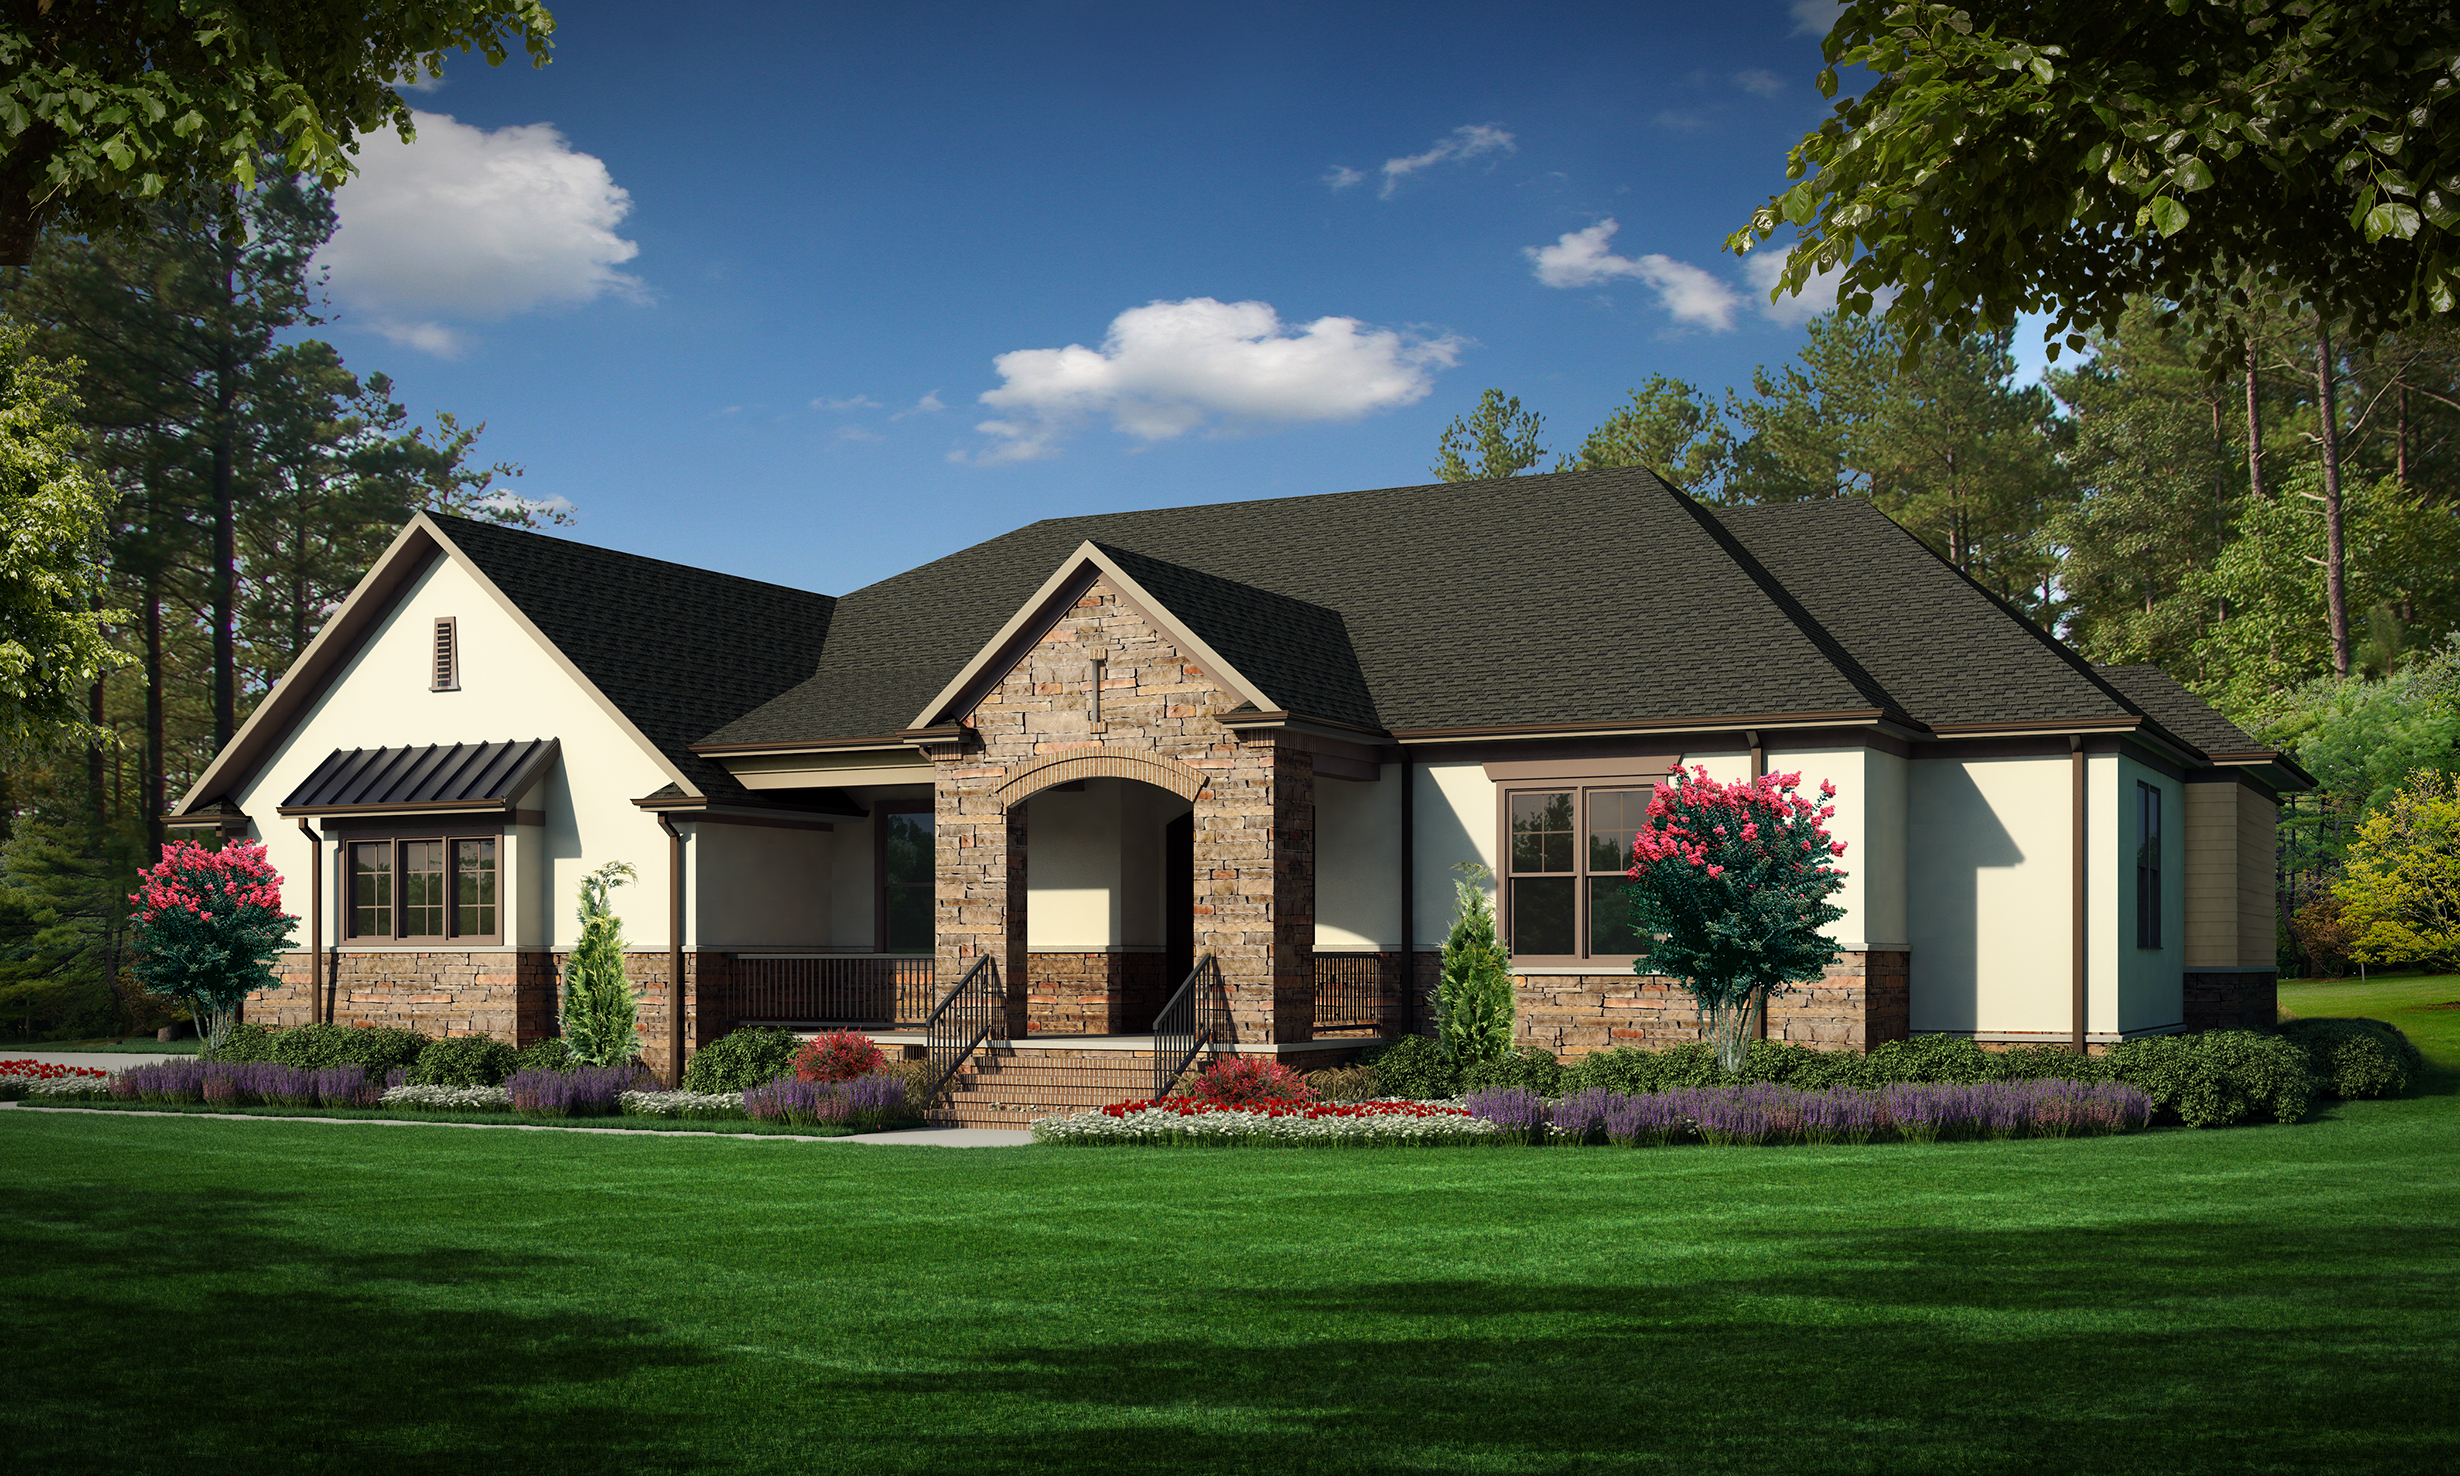 """Option A (Stucco)  Total SF 5033 sq. ft. Total SF heated 3356 sq. ft. Bedrooms 4 Bathrooms 3.5 Width: 78'-0"""" Depth: 83'-0"""" Attached three-car garage Bonus Room Rear covered porch Front covered porch"""